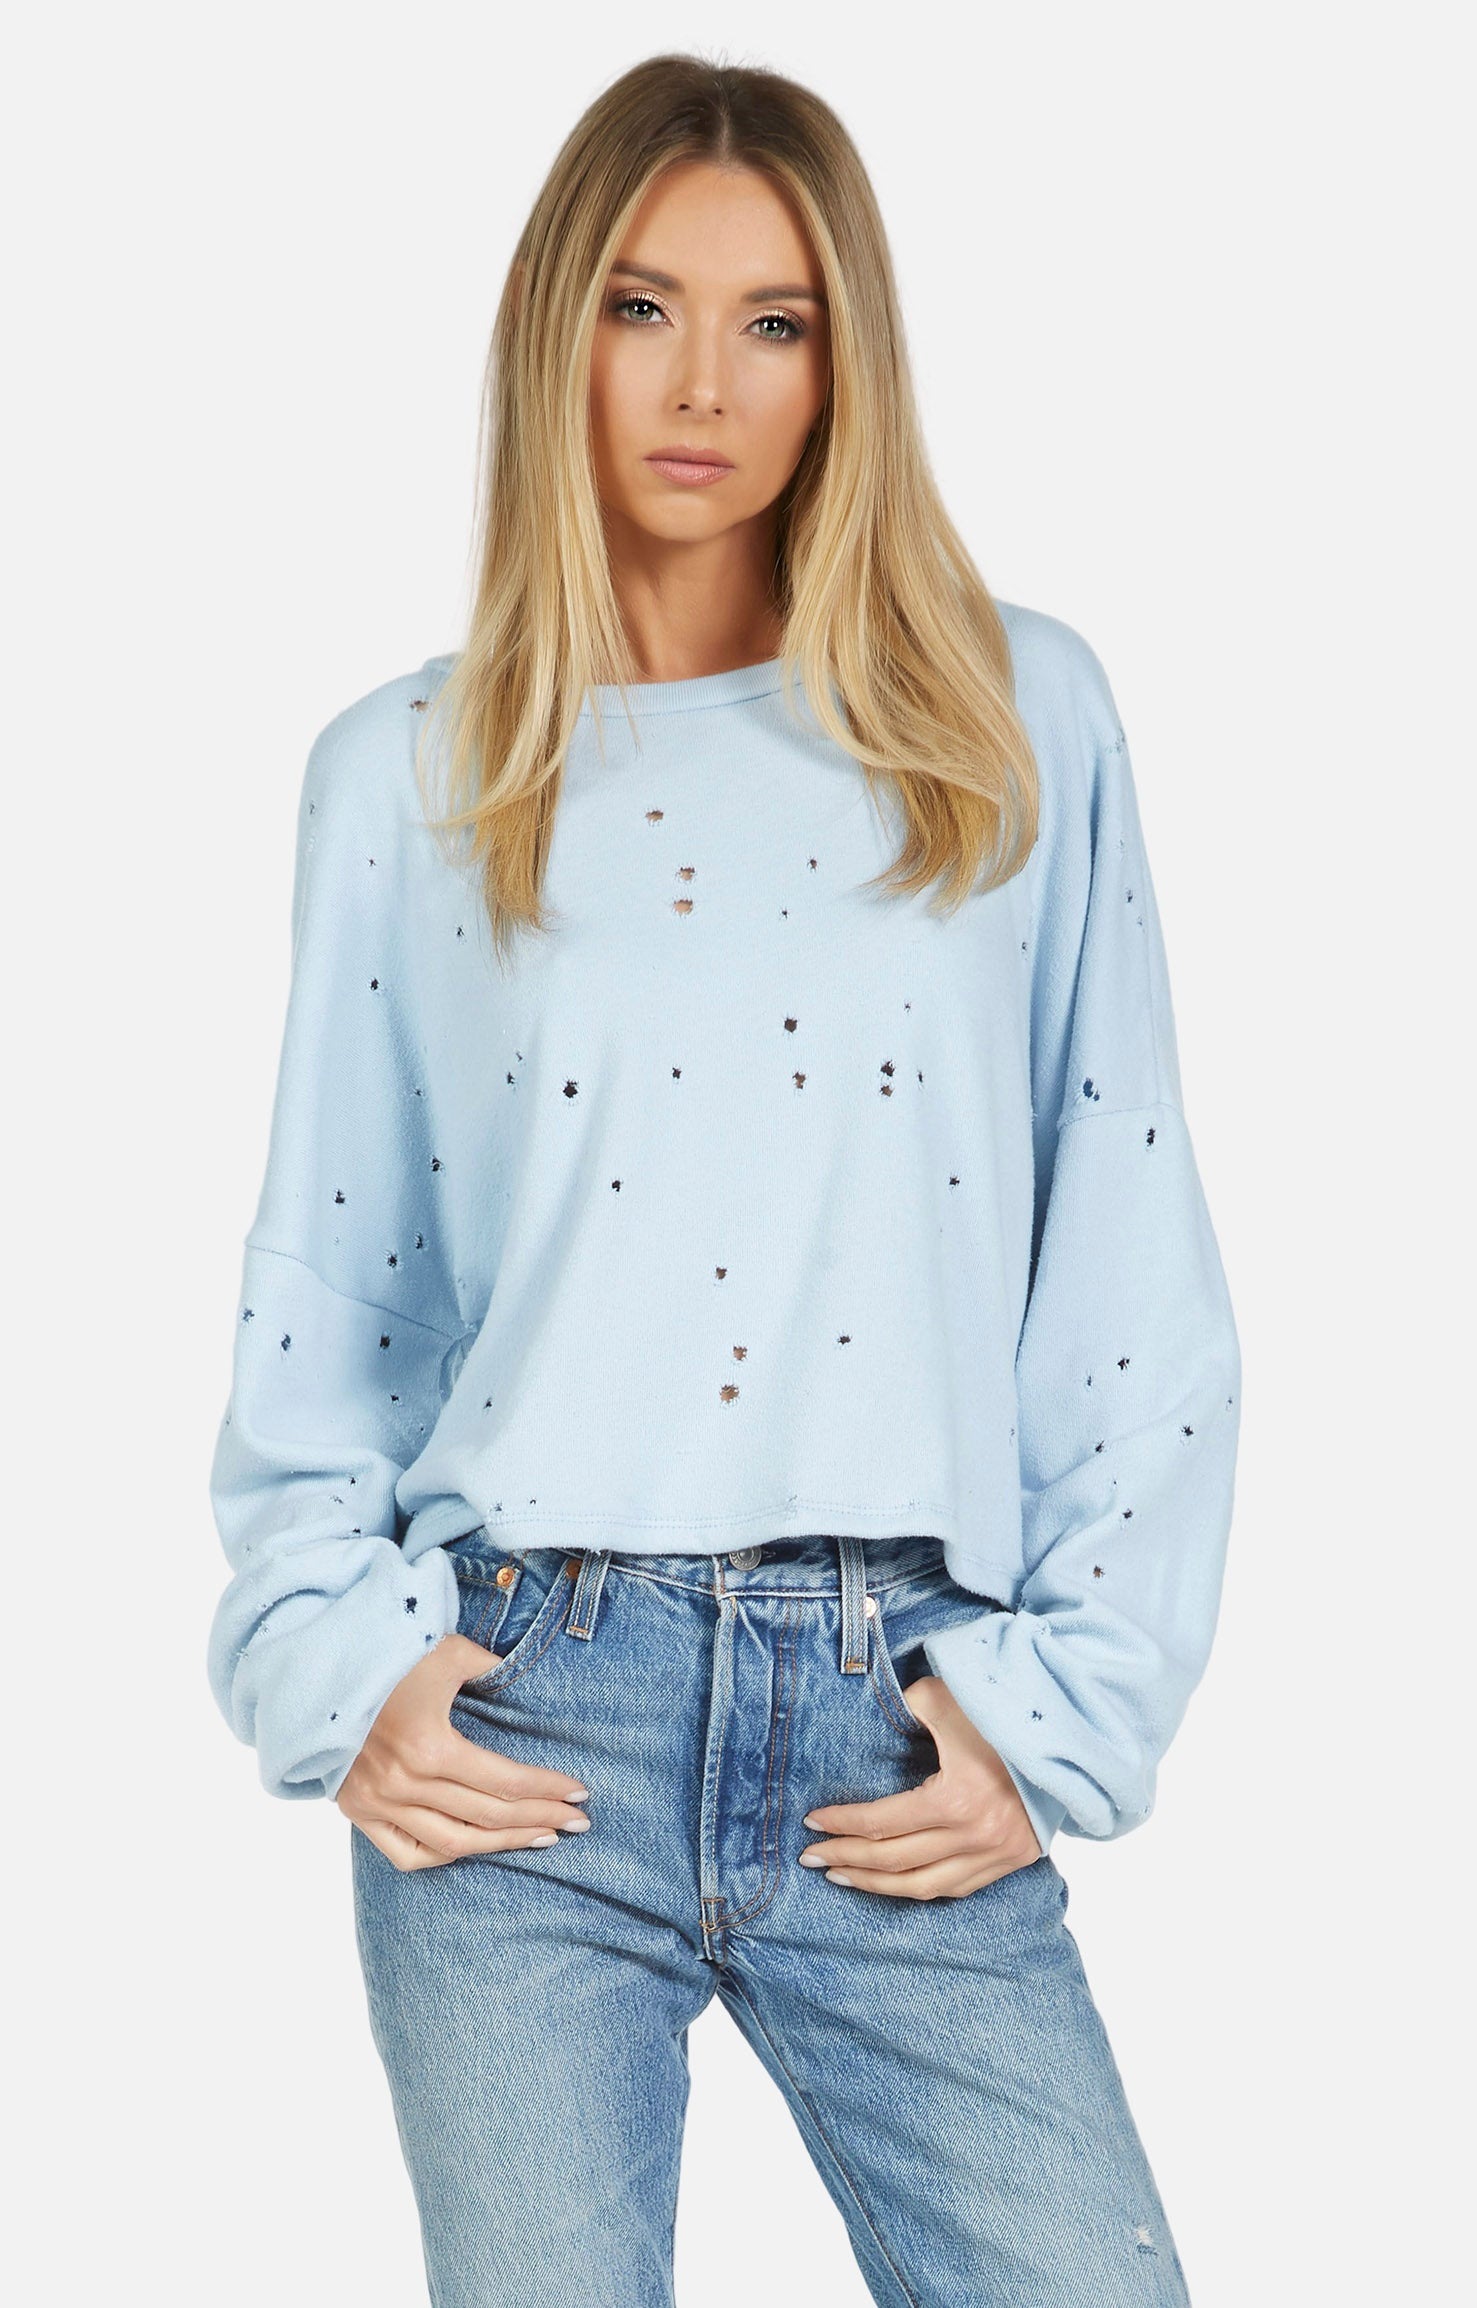 Fairfax Holey Crop Sweatshirt